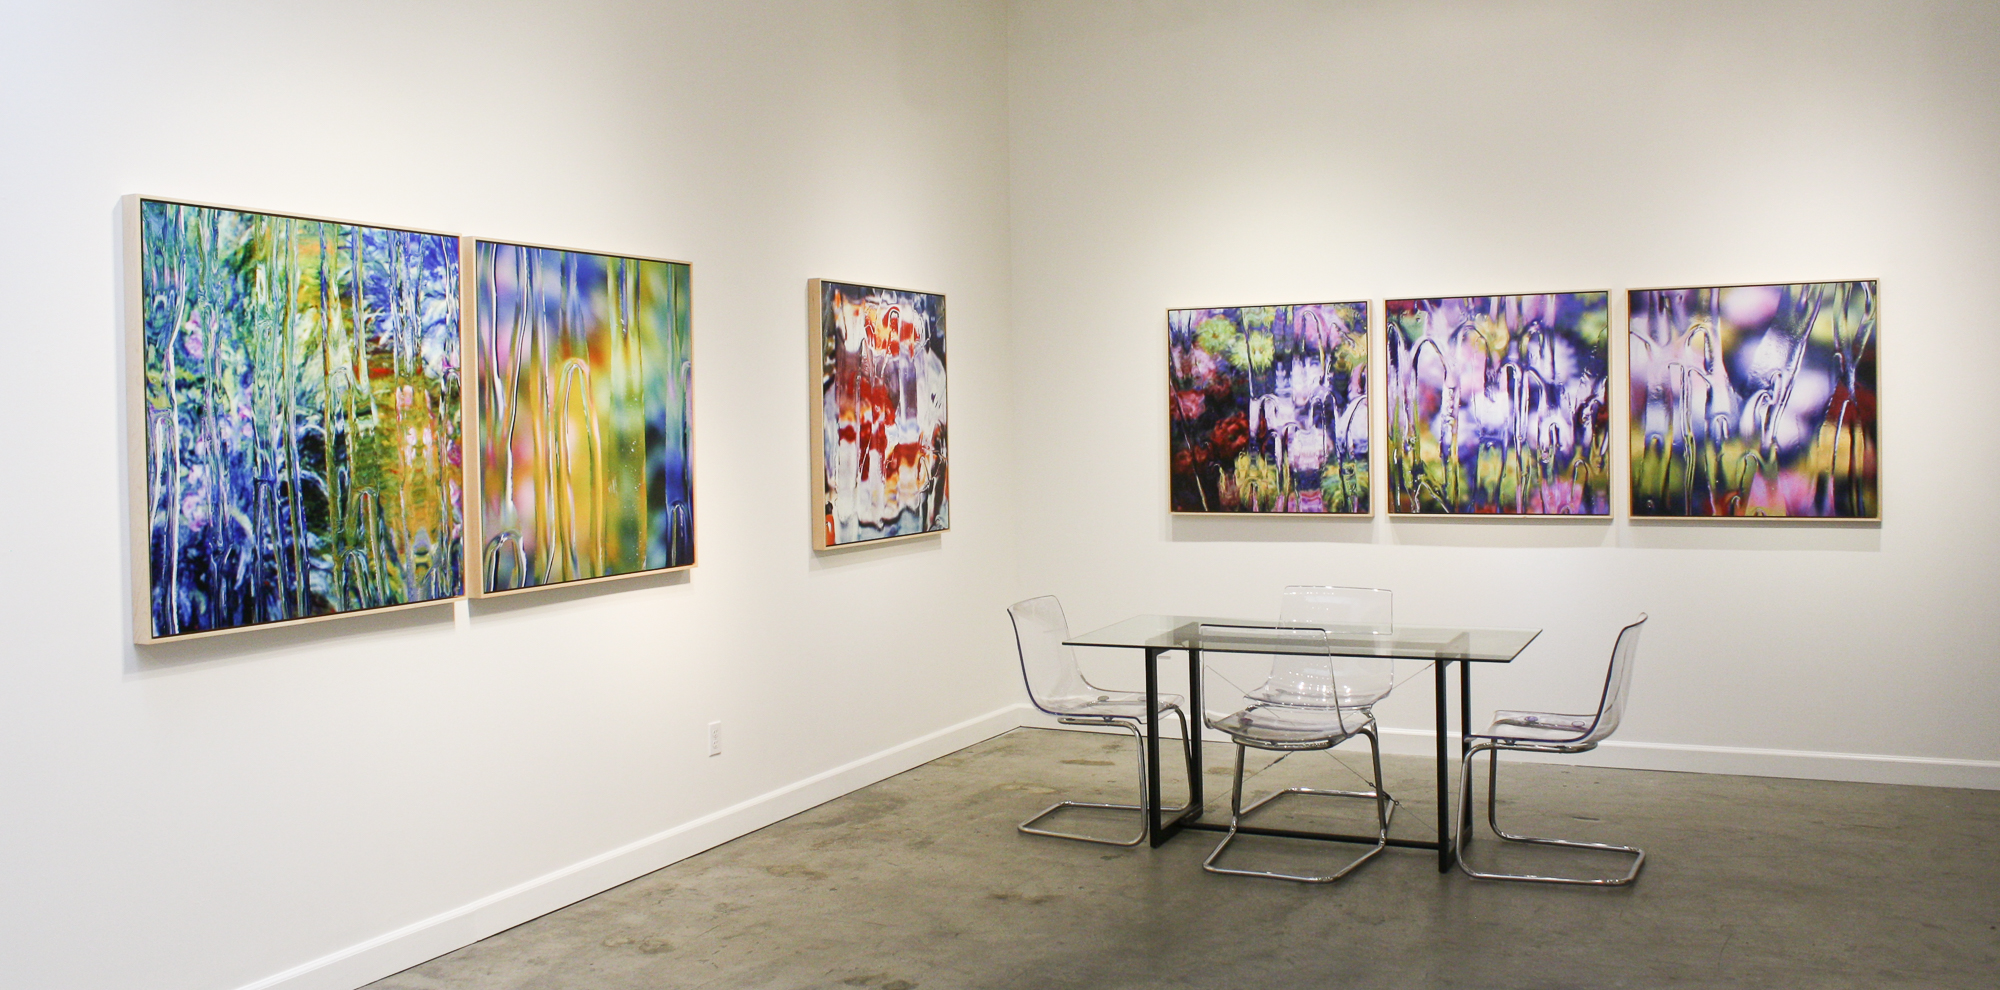 Gardens of Abstraction show at Slate Contemporary in Oakland, CA